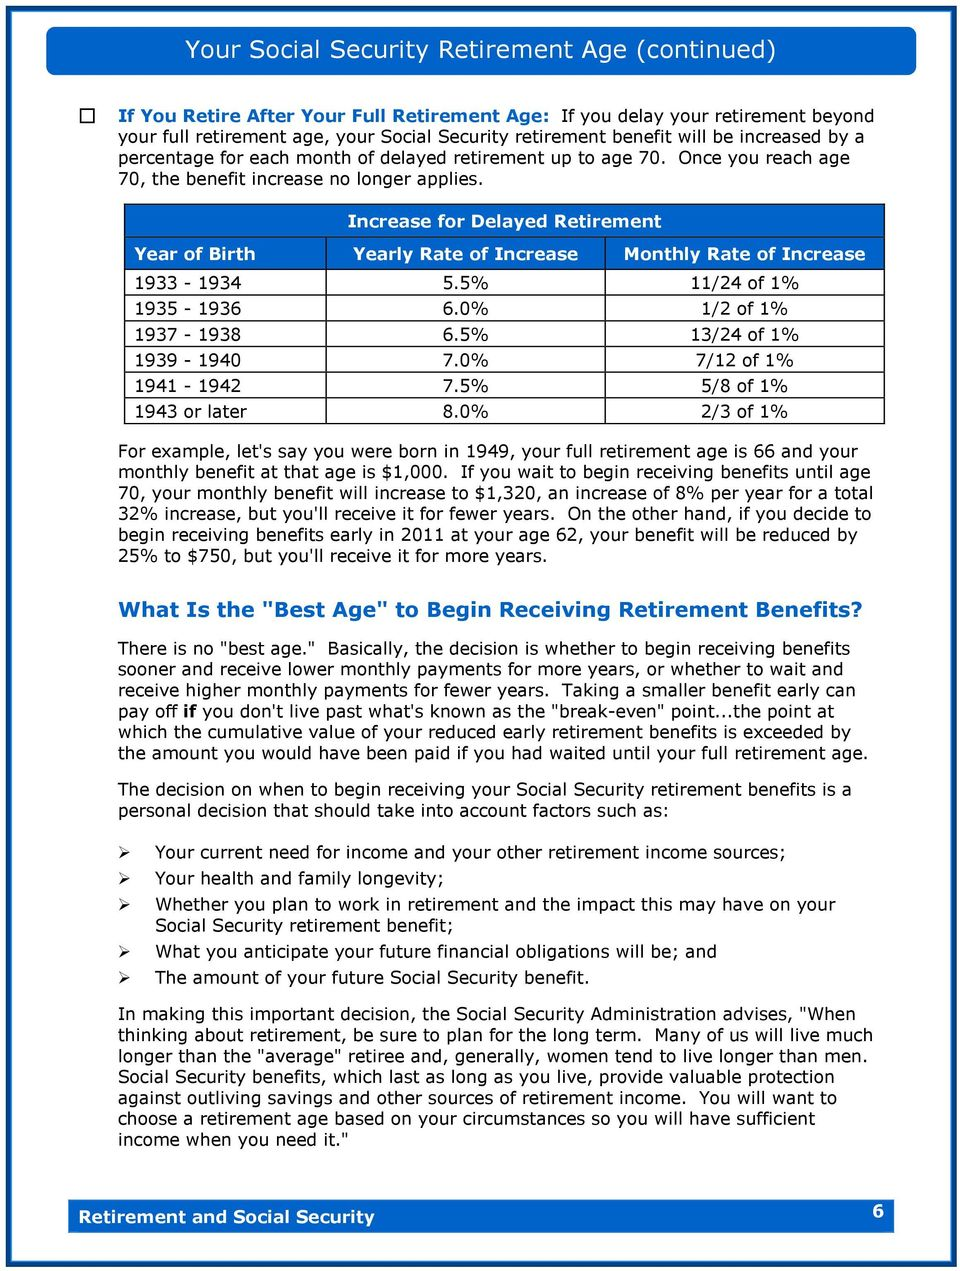 Increase for Delayed Retirement Year of Birth Yearly Rate of Increase Monthly Rate of Increase 1933-1934 5.5% 11/24 of 1% 1935-1936 6.0% 1/2 of 1% 1937-1938 6.5% 13/24 of 1% 1939-1940 7.